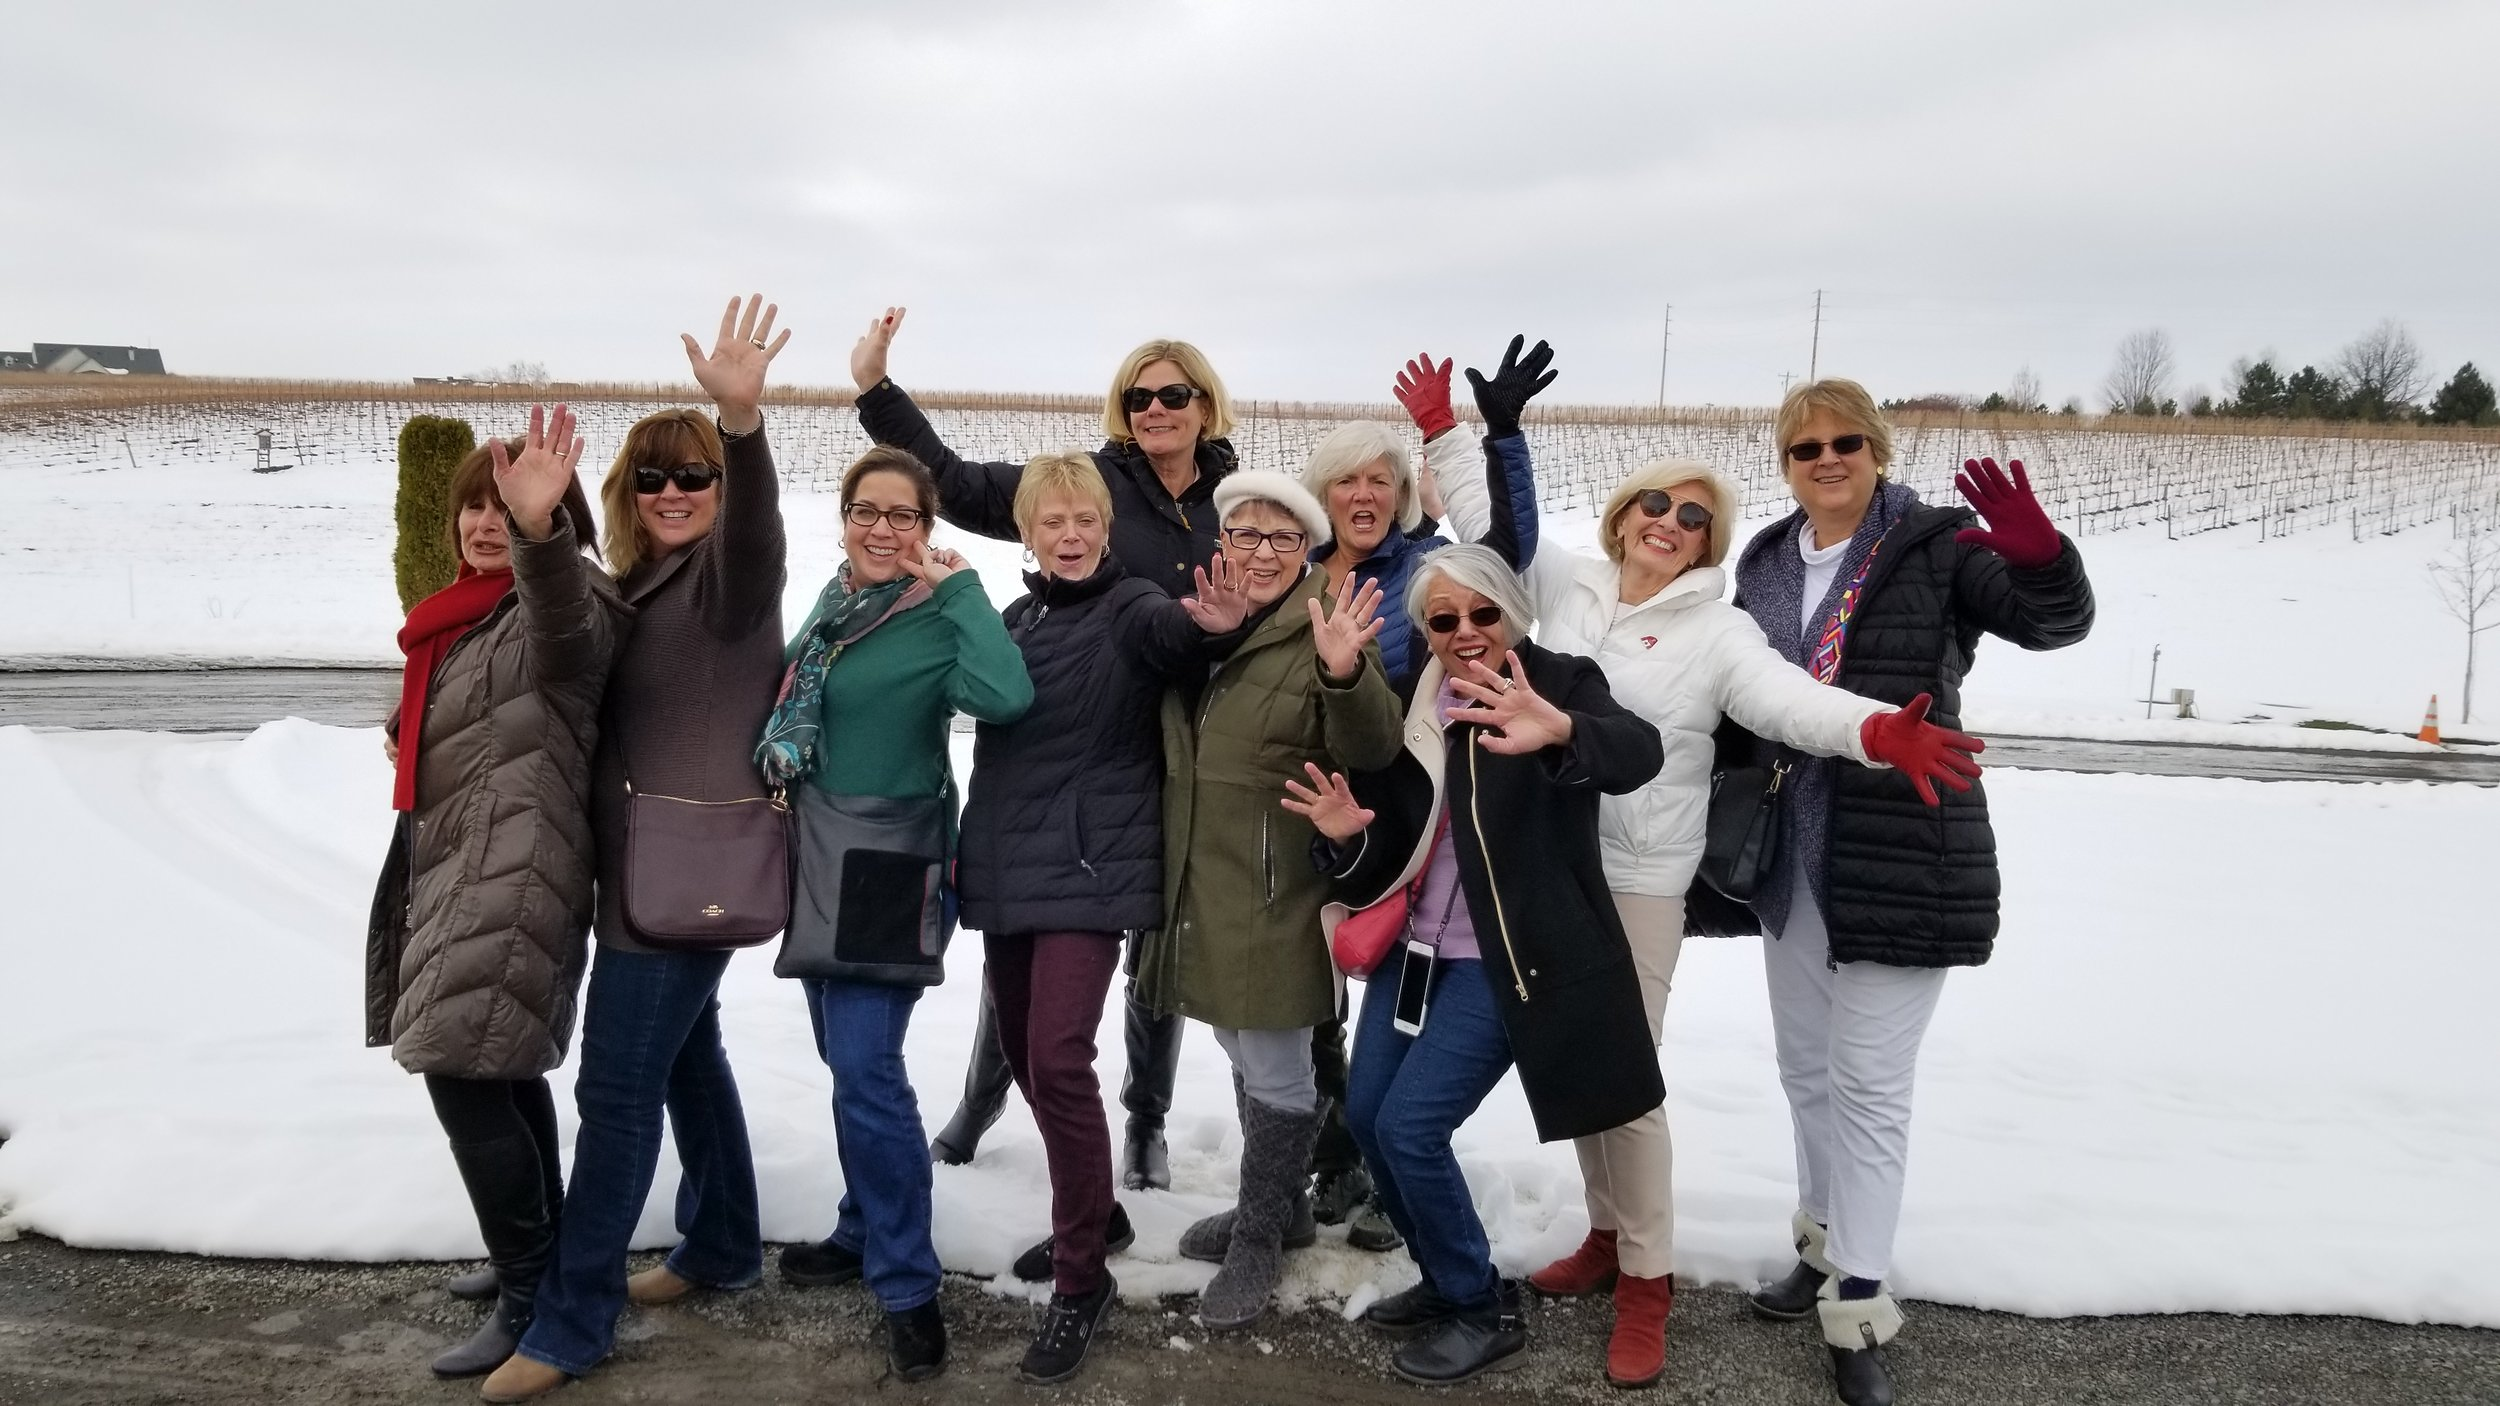 Ladies wine tour in Walla Walla during the winter